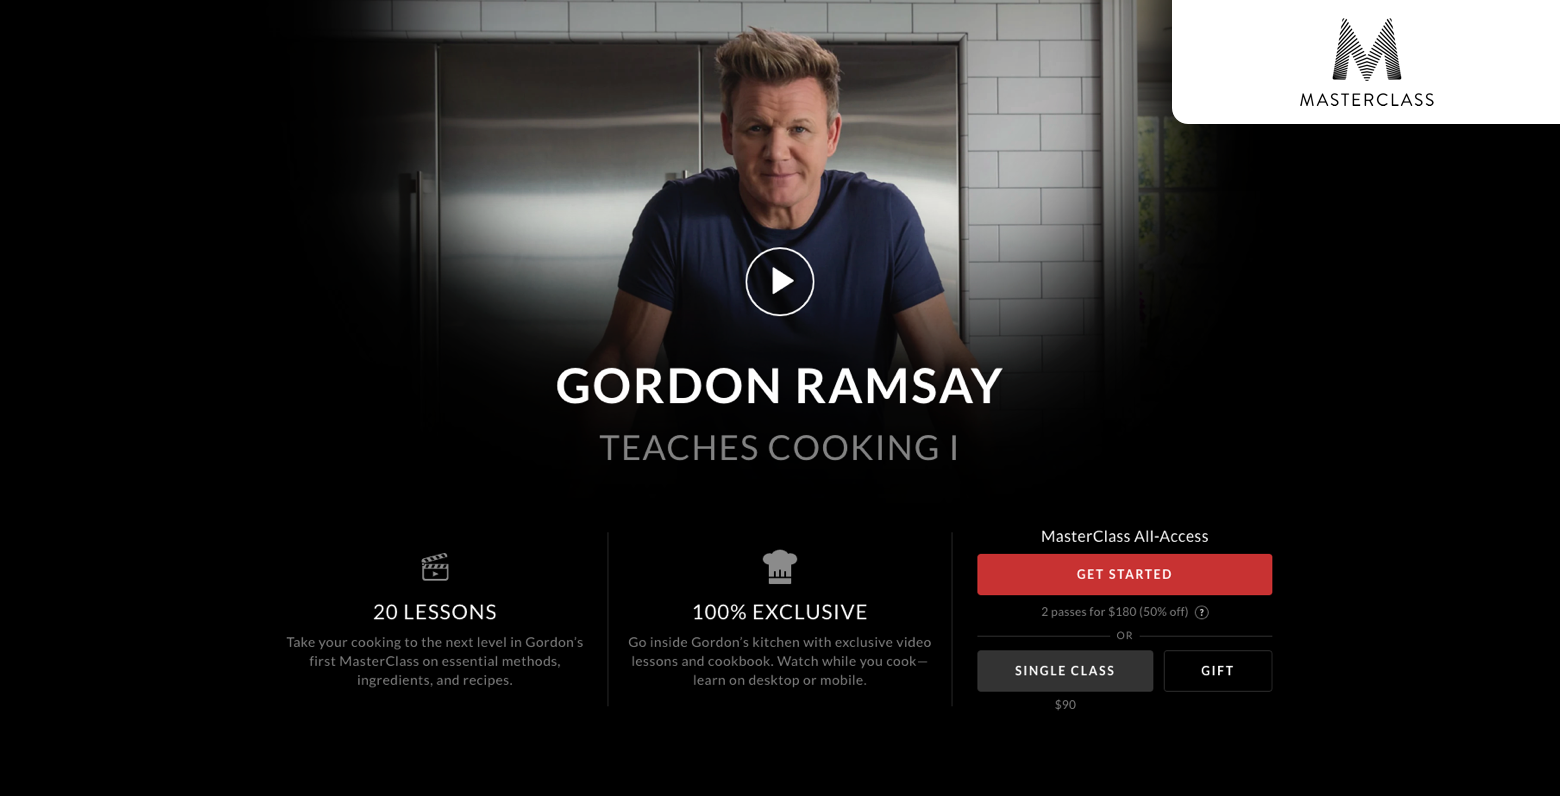 Gordon Ramsey online cooking classes